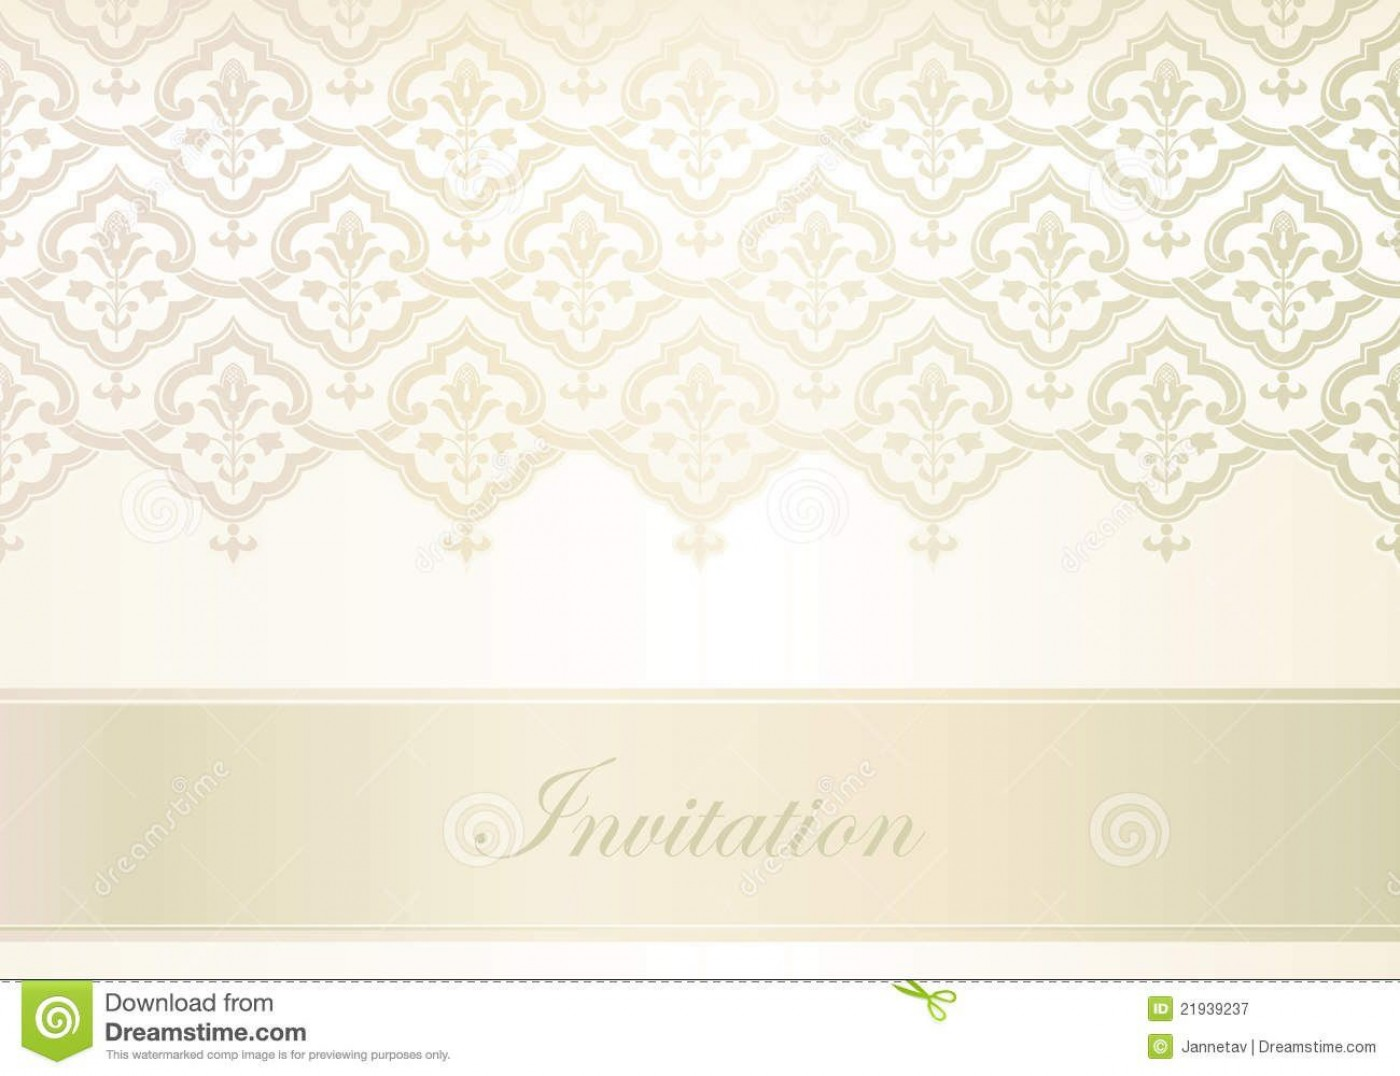 009 Astounding Free Download Invitation Card Format High Definition  Marriage In Word Psd Wedding1400